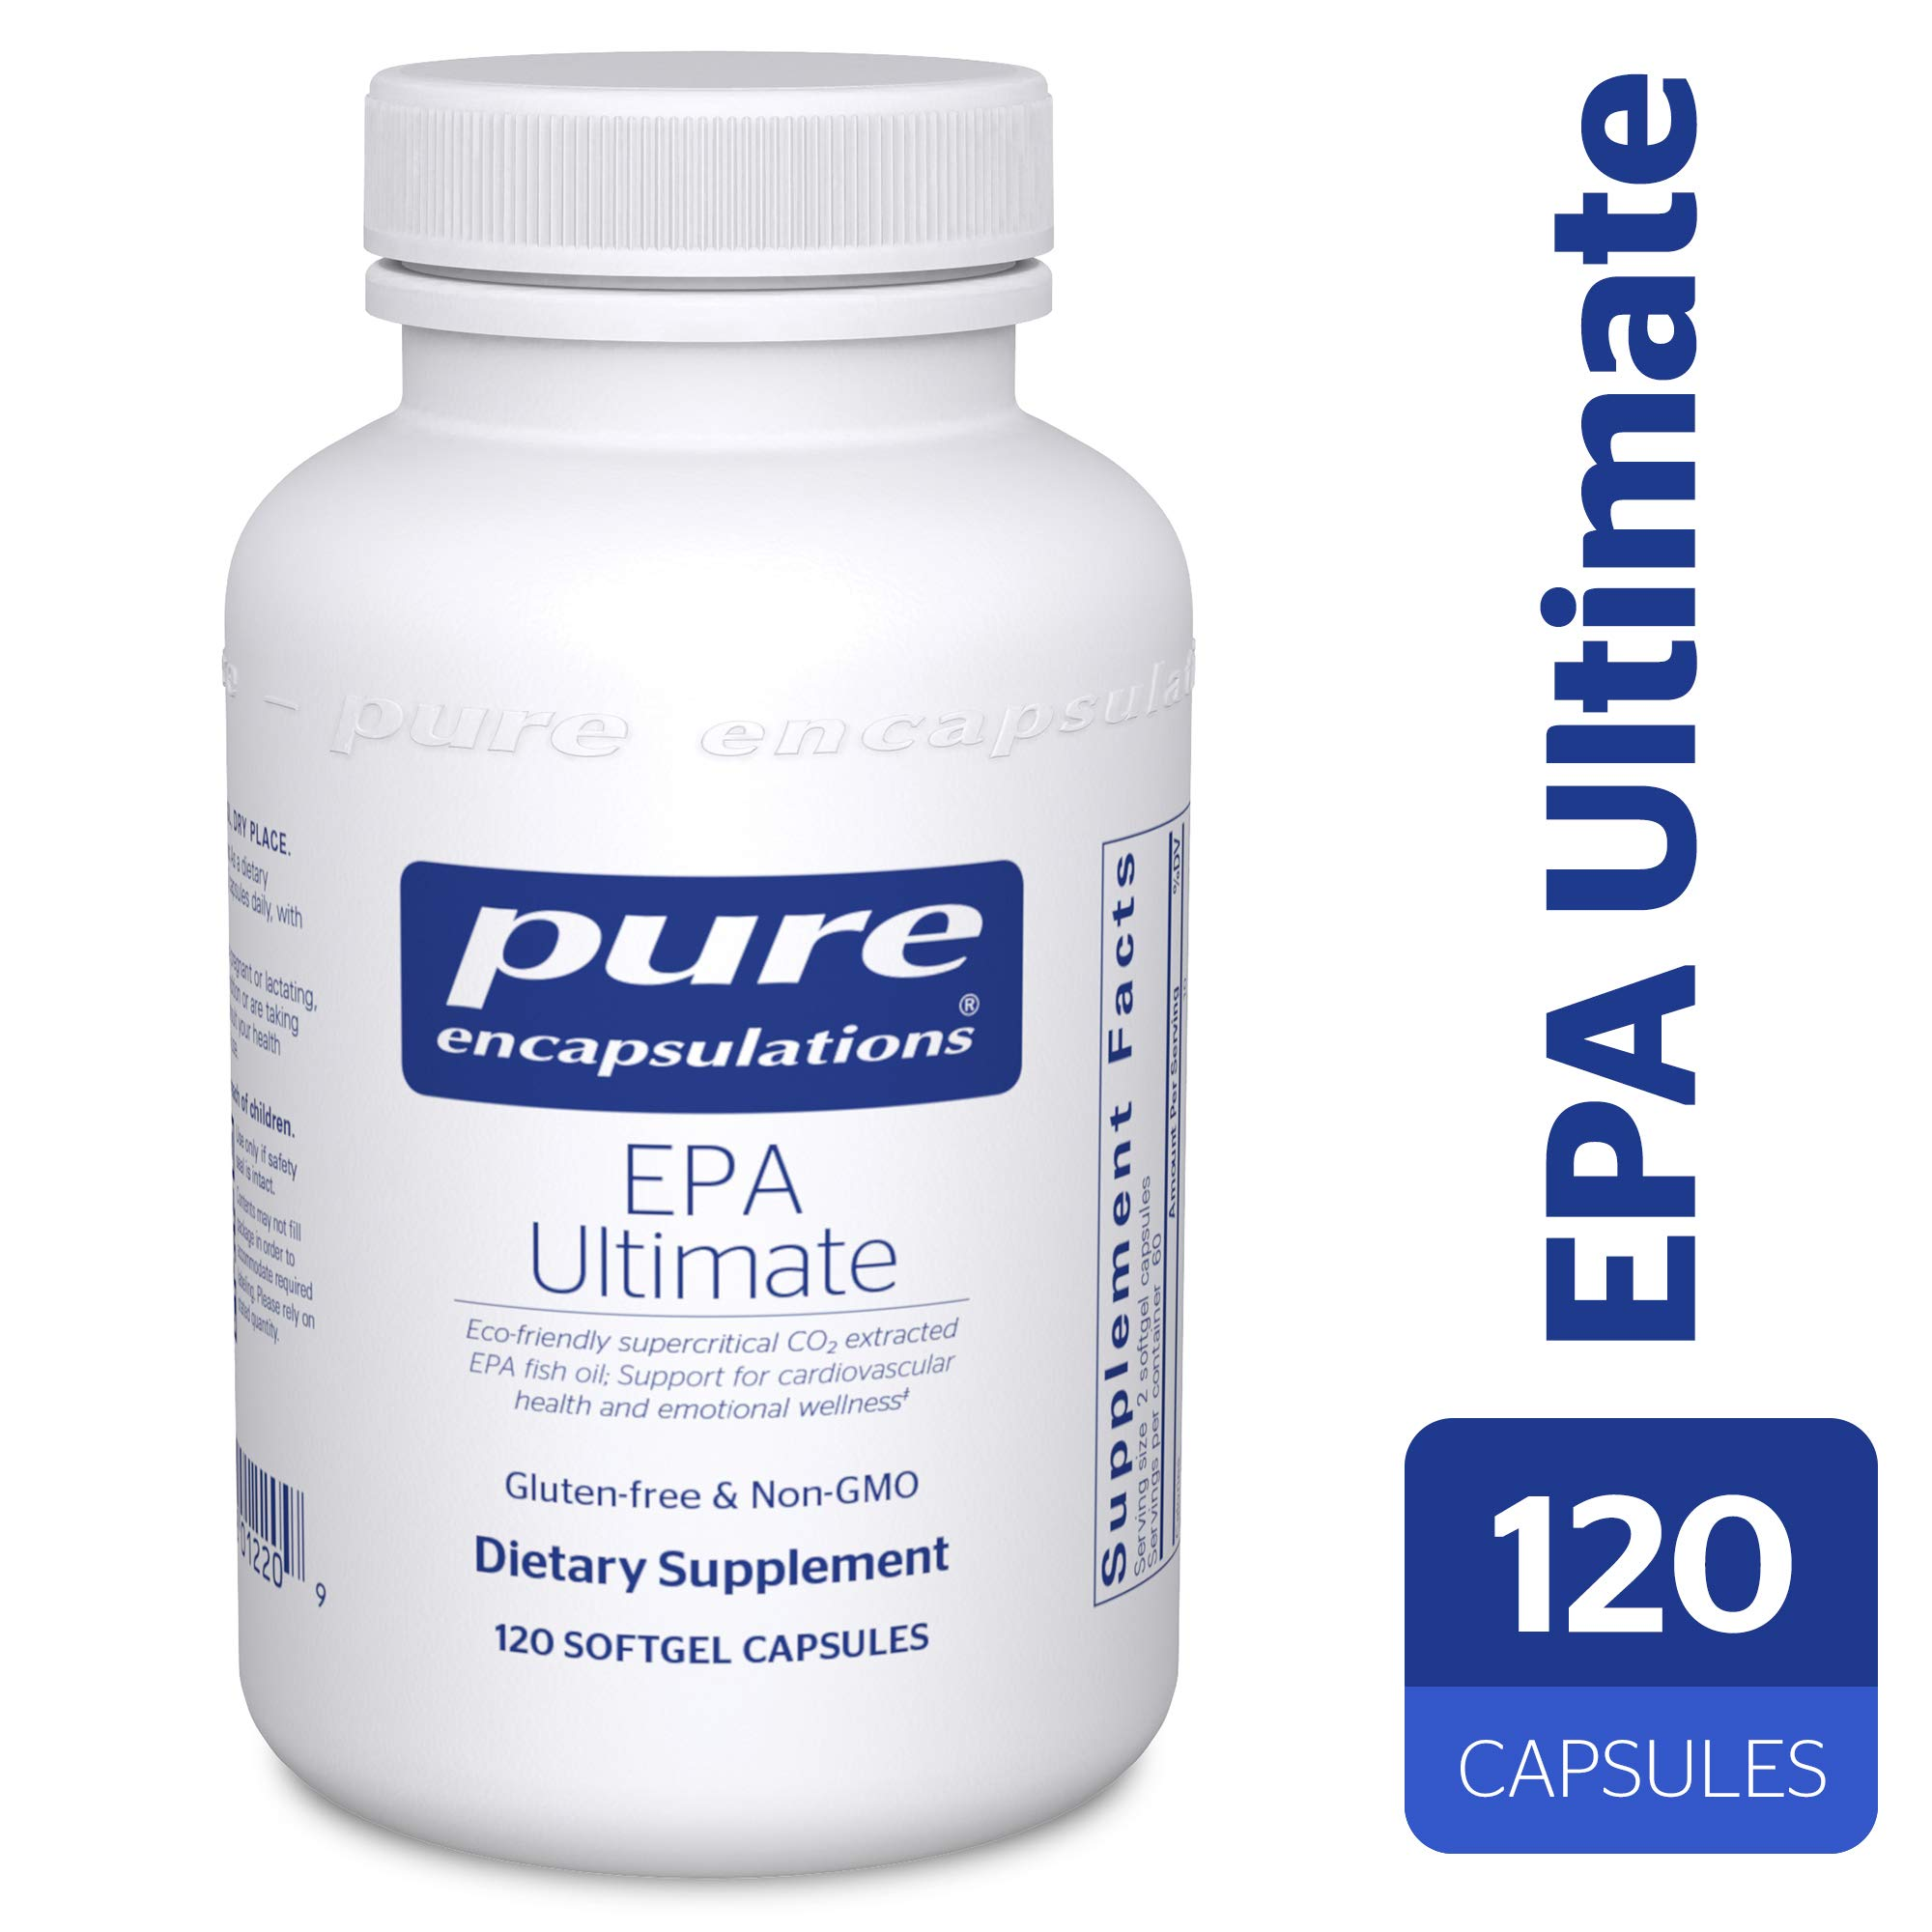 Pure Encapsulations - EPA Ultimate - Eco-Friendly Supercritical CO2 Extracted EPA Fish Oil Concentrate - 120 Softgel Capsules